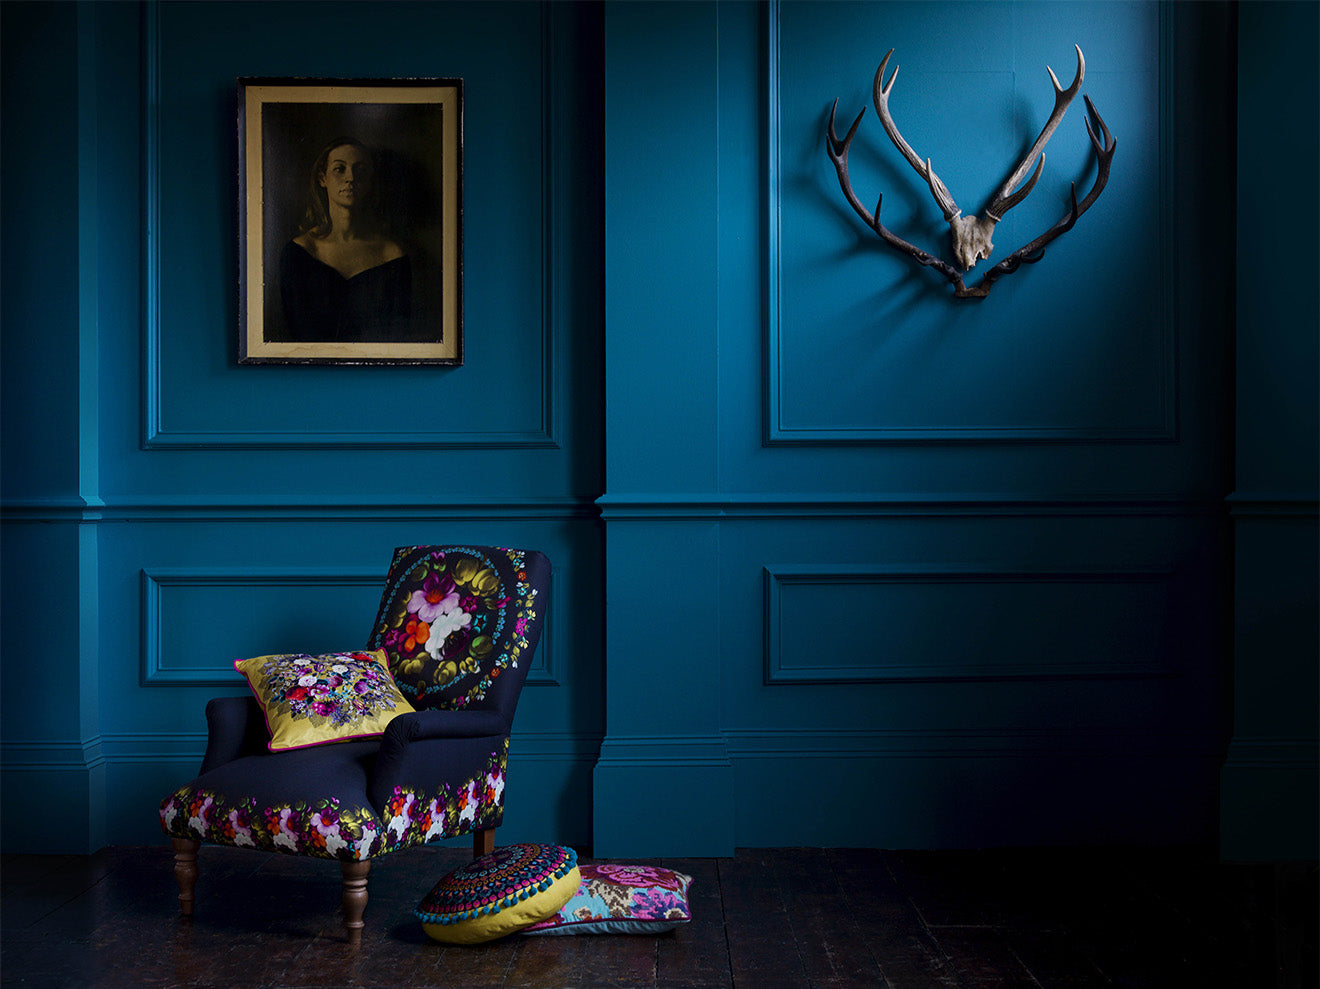 Marks and Spencer new season collection embroidered cushions in dark blue room